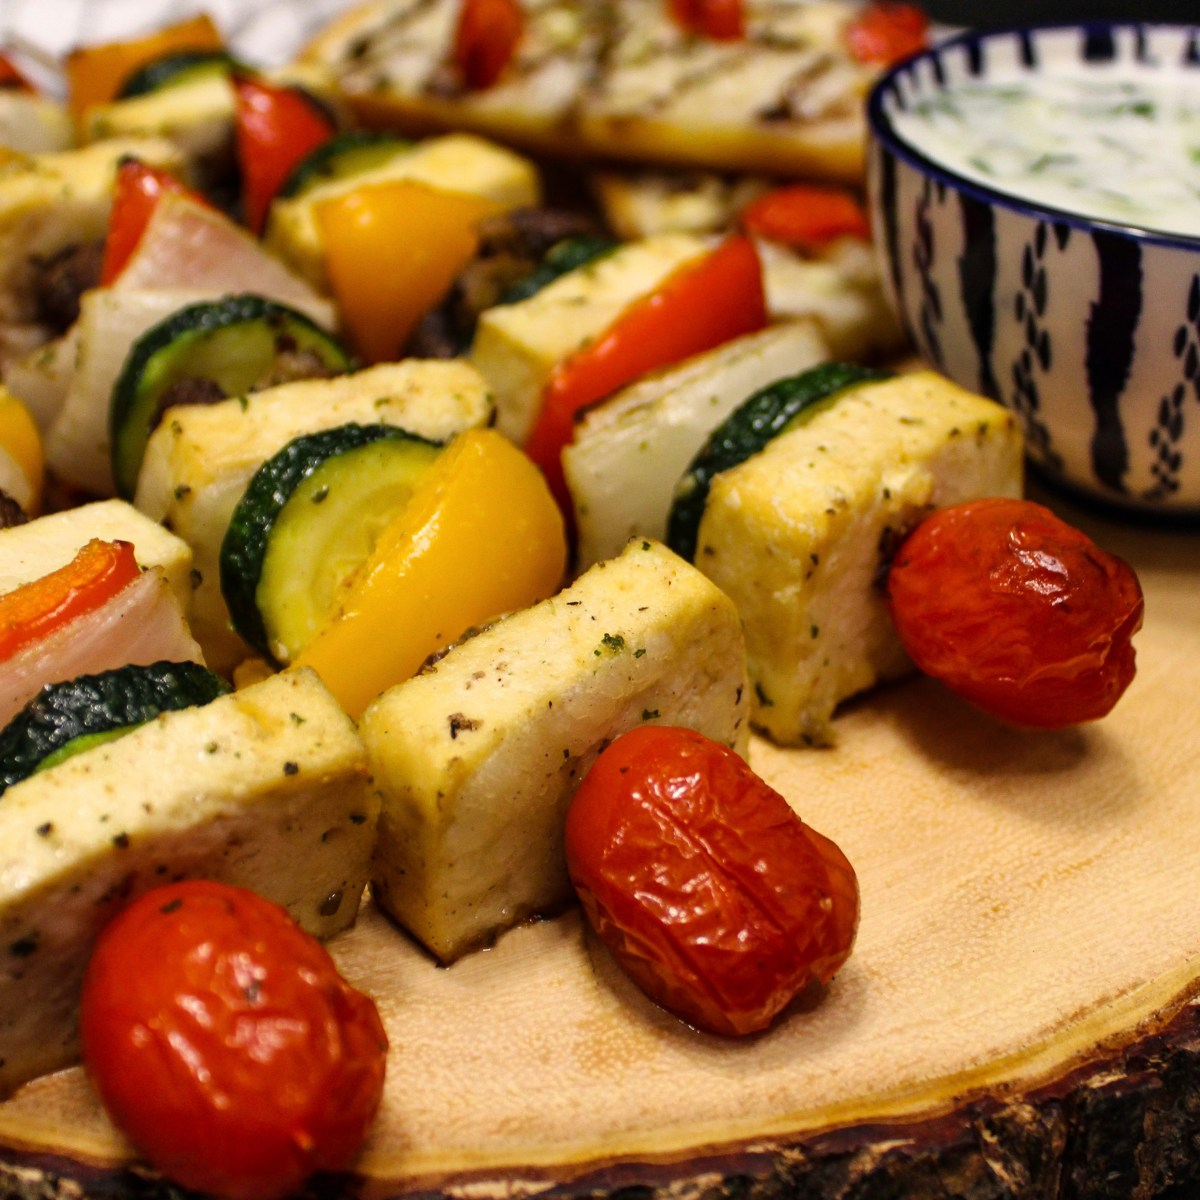 Marinated tofu souvlaki skewers with tomato, zucchini, peppers and onions